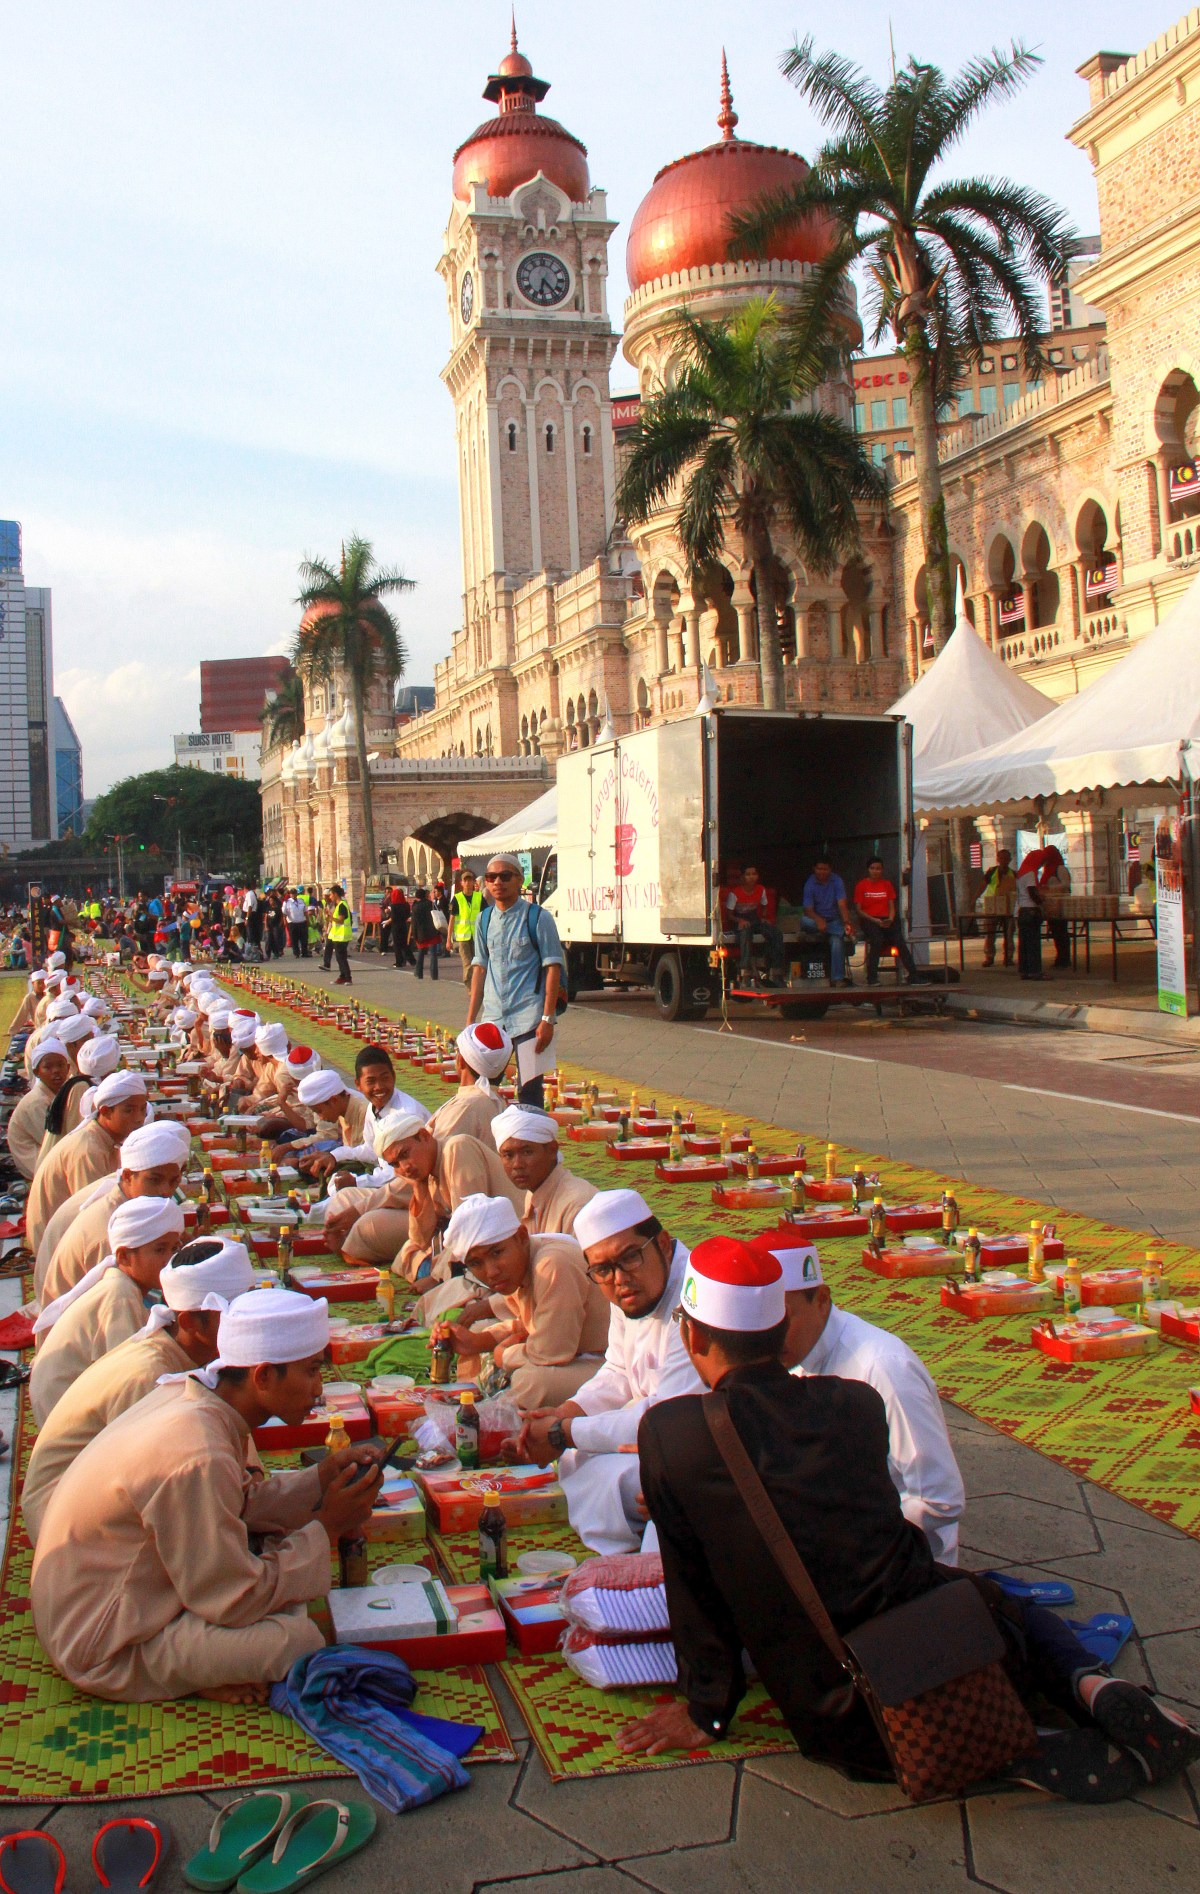 Ramadan feast at Merdeka Square in KL